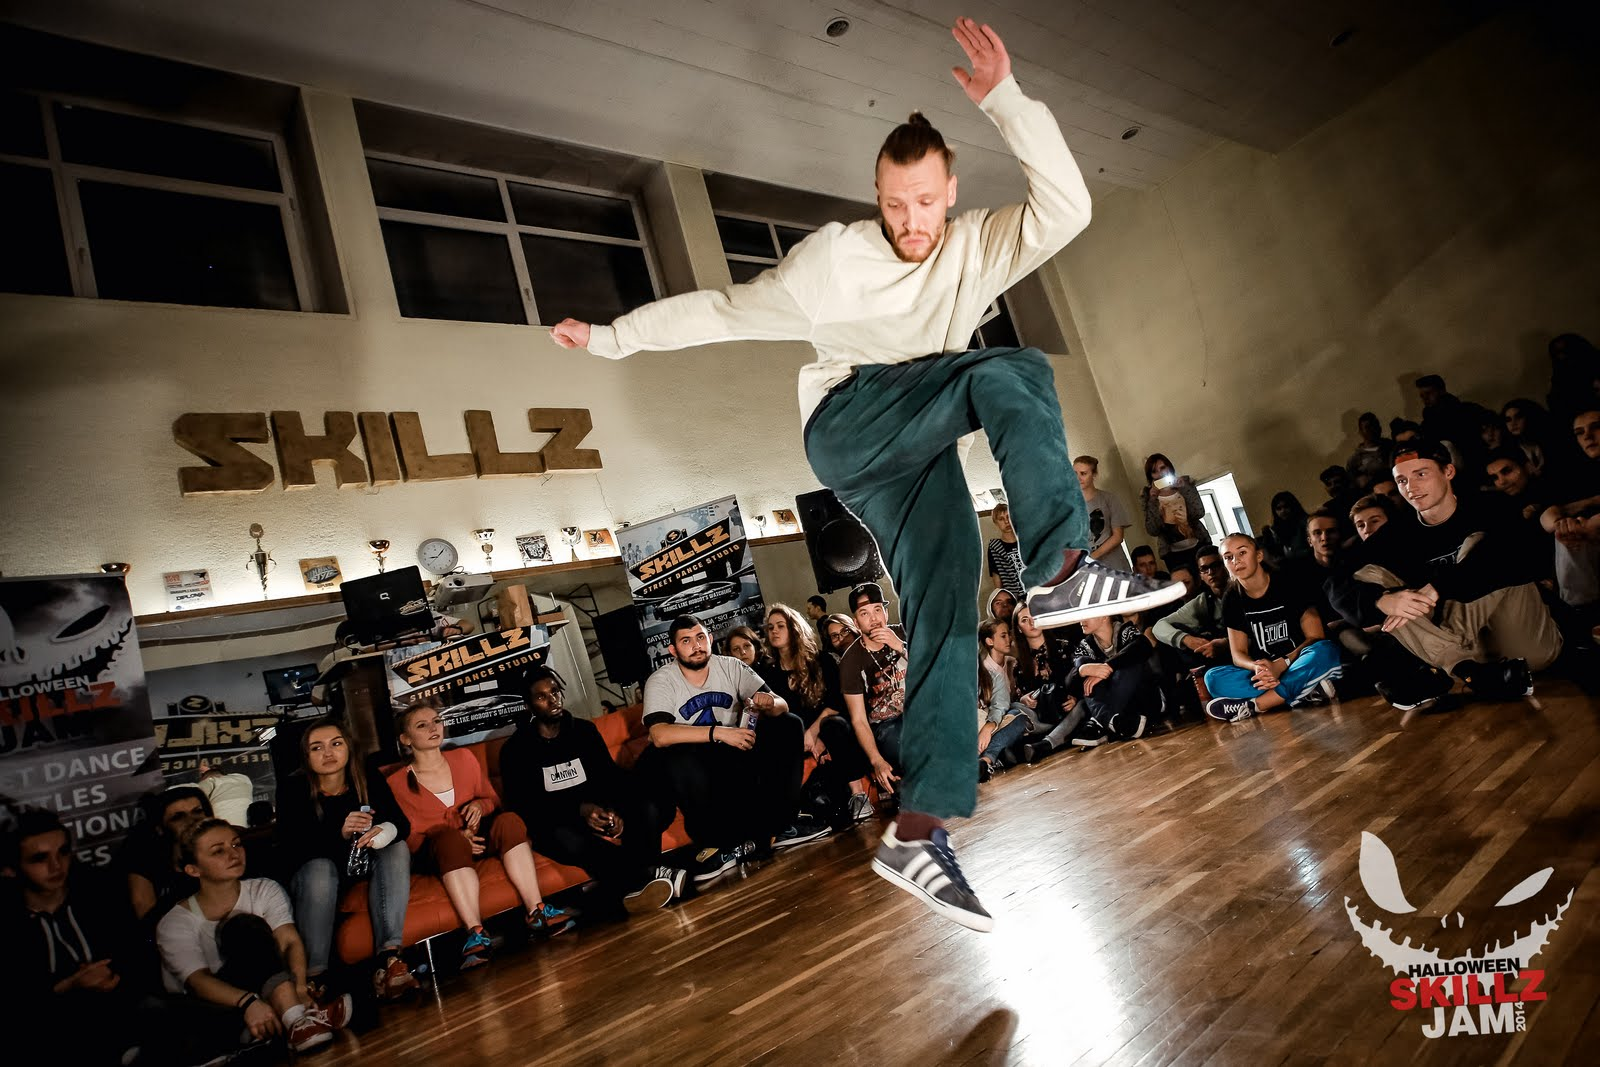 SKILLZ Halloween Jam Battles - a_MG_5227.jpg